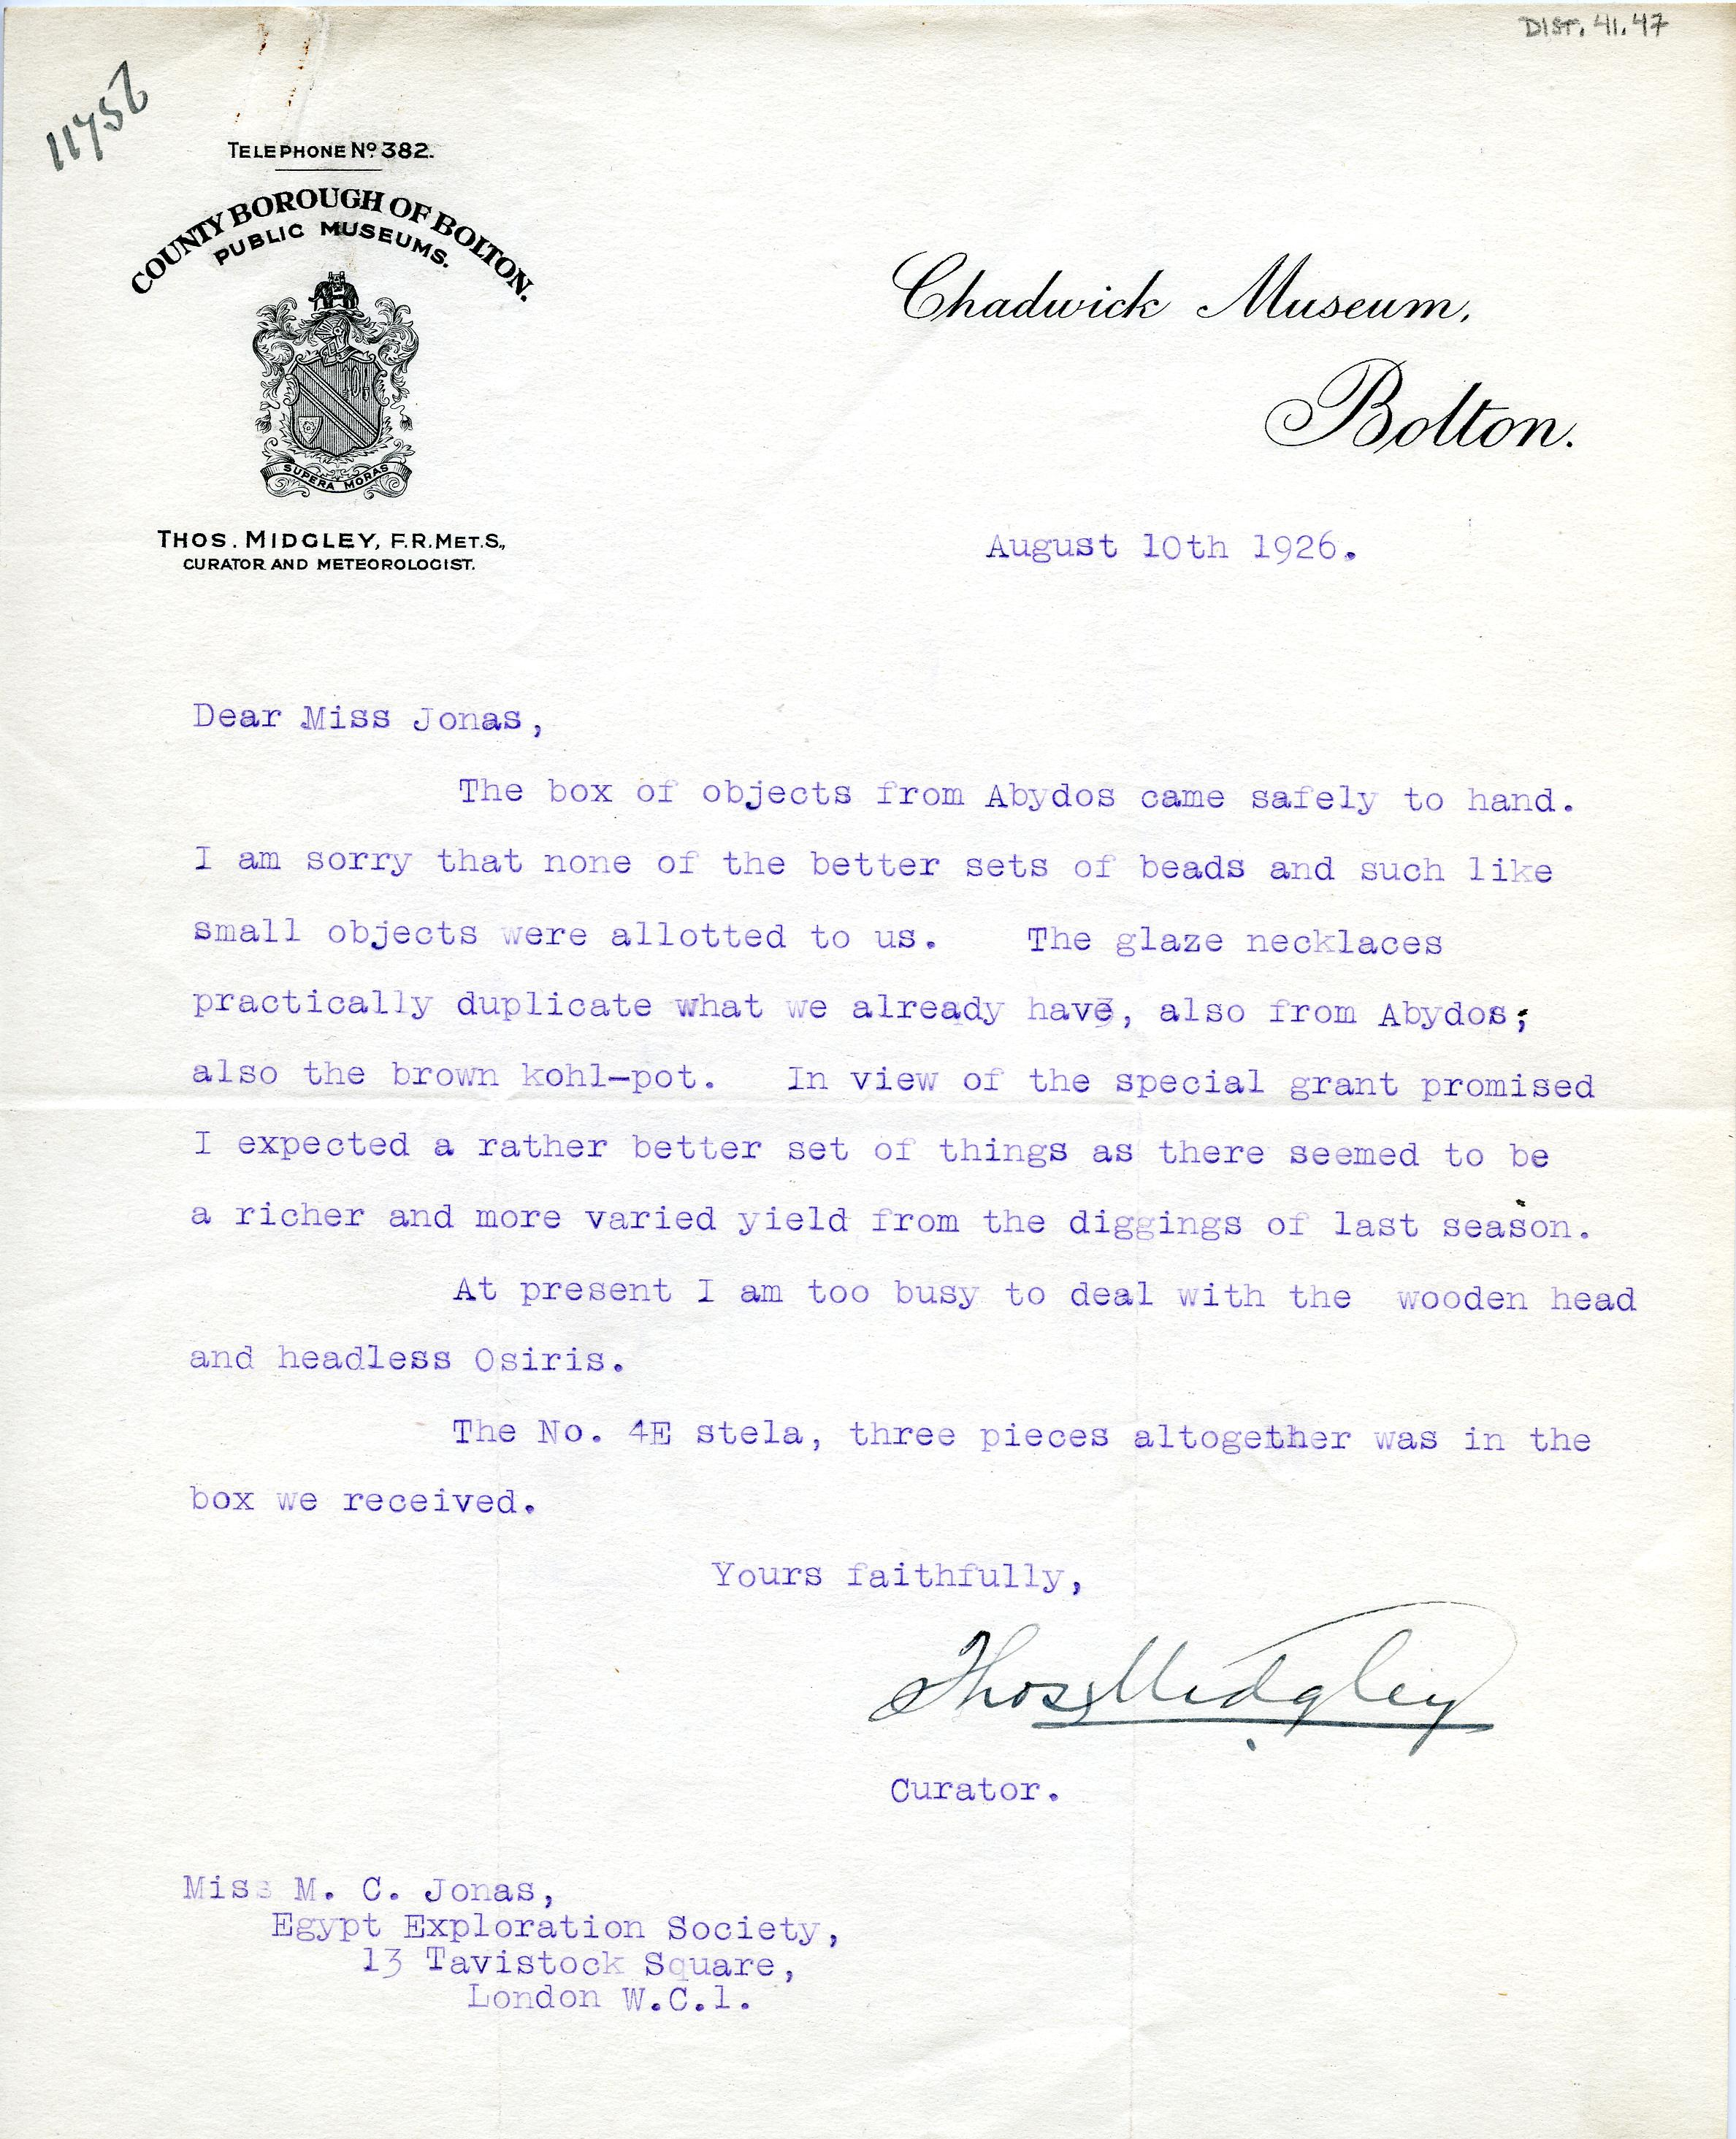 1922-76 Miscellaneous correspondence with museums DIST.41.47